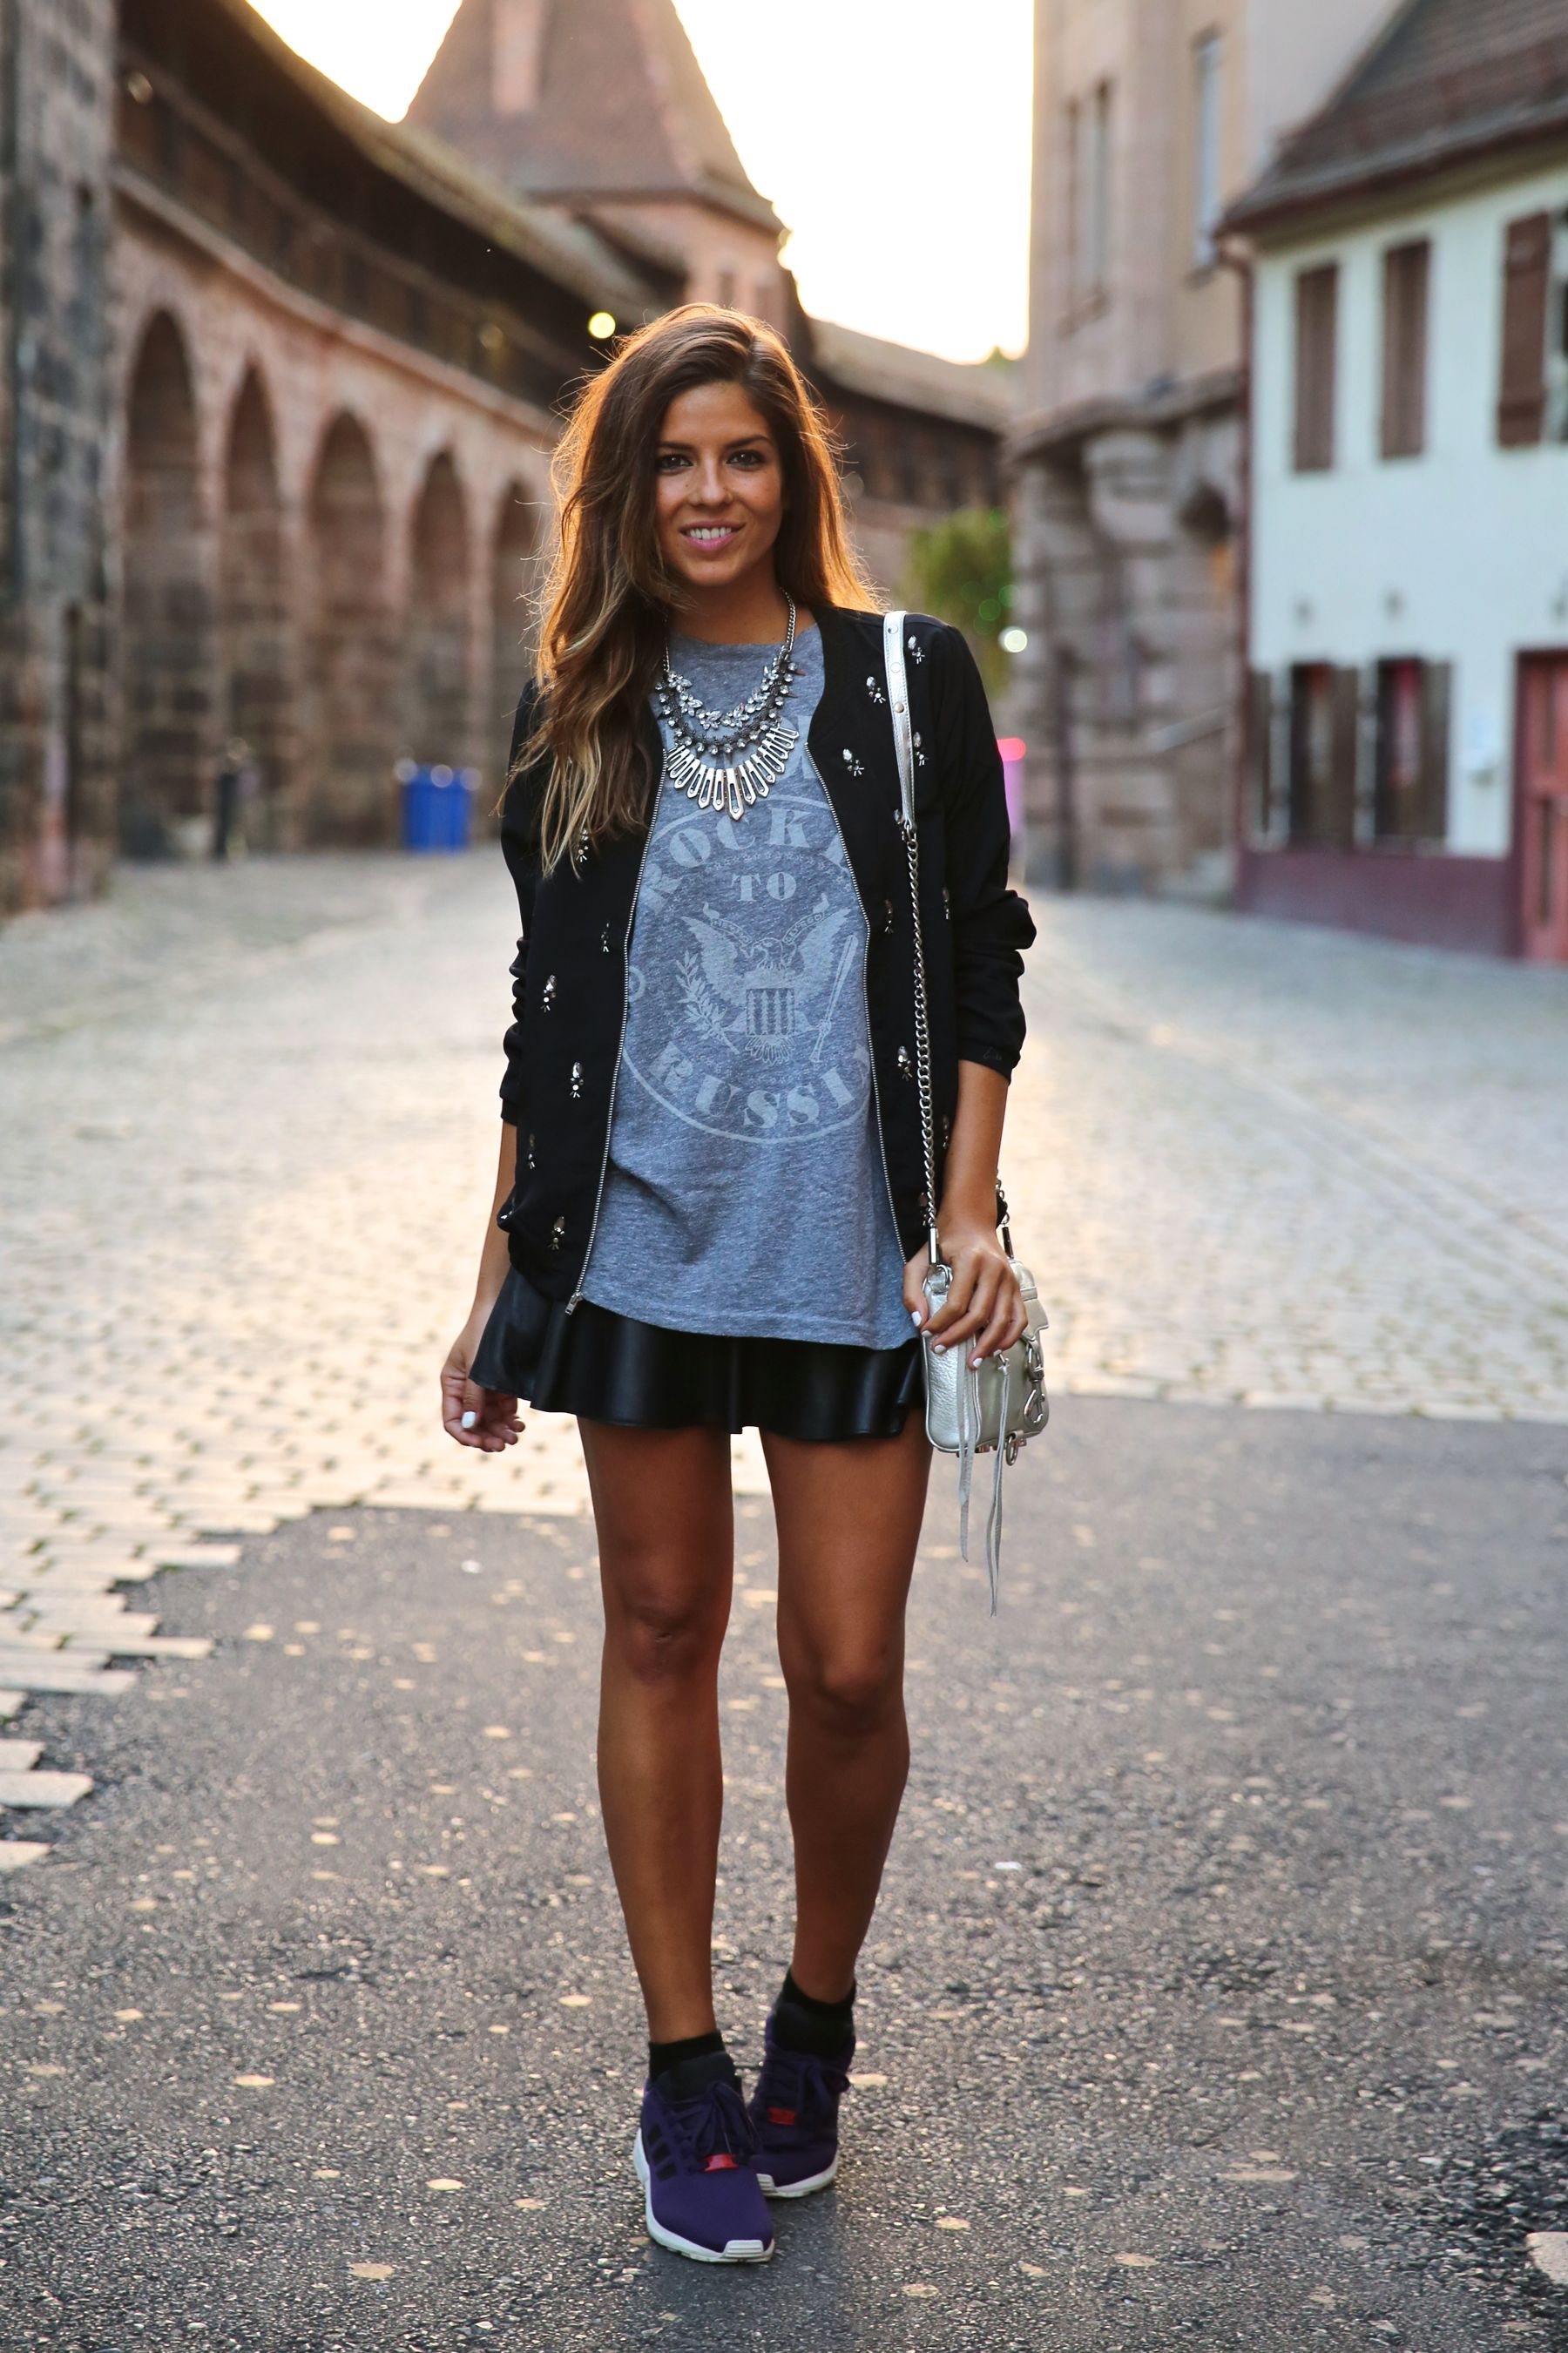 Natalia Cabezas is wearing a jacket from Vila, T-shirt from Gap, trainers from Adidas, (ZX Flux) and a bag from Rebecca Minkoff